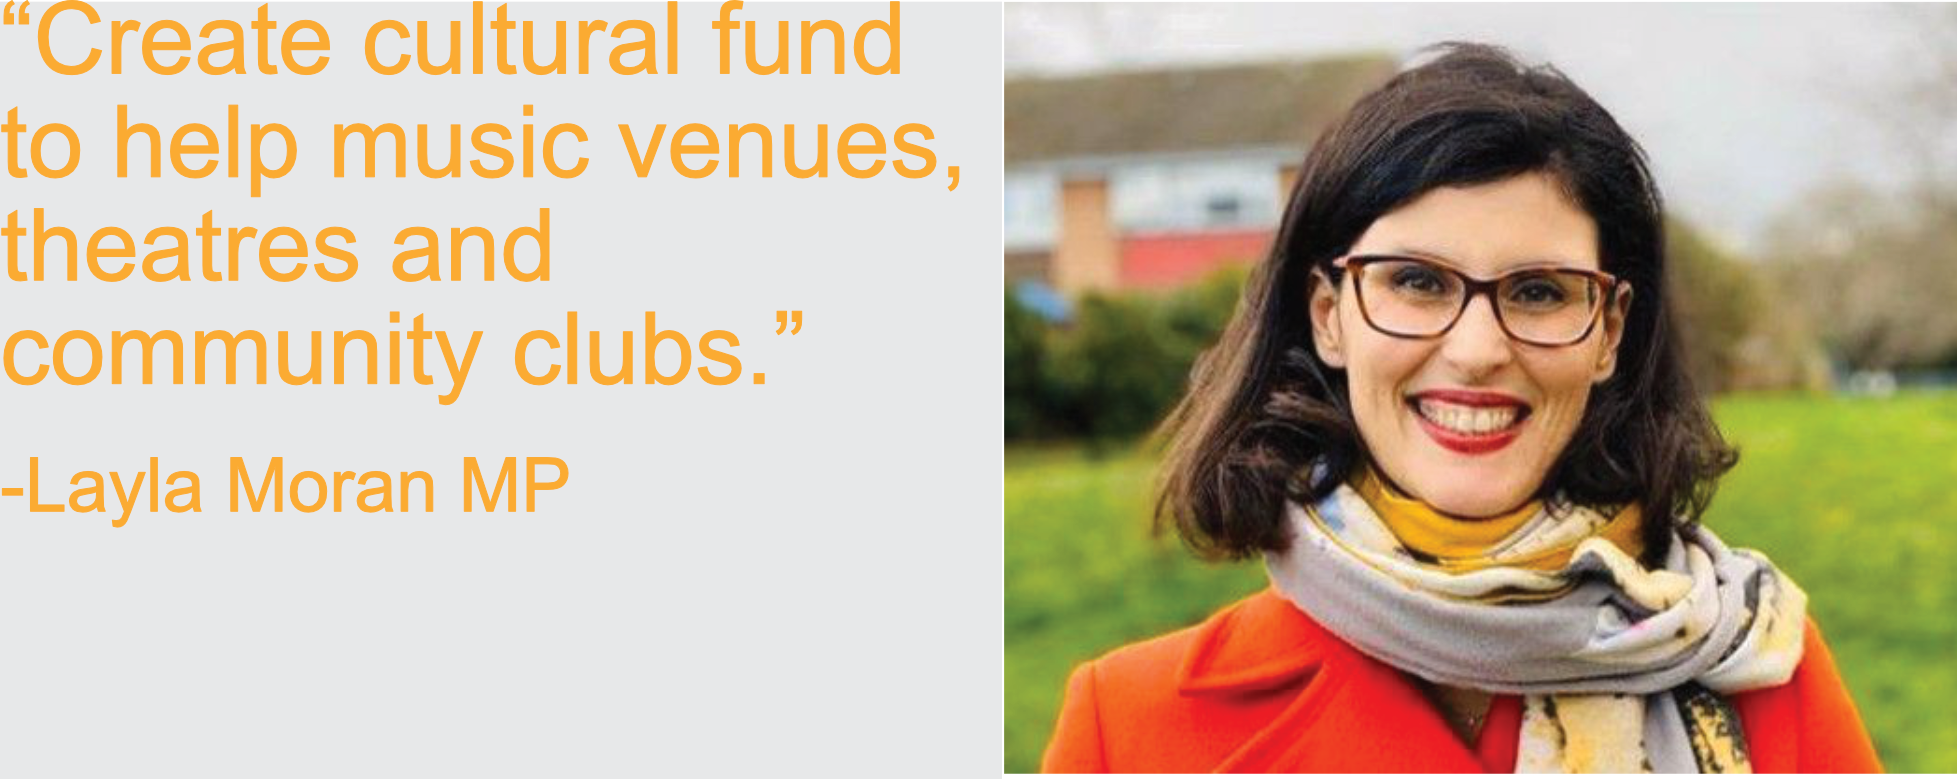 Create cultural fund to help music venues, theatres and community clubs